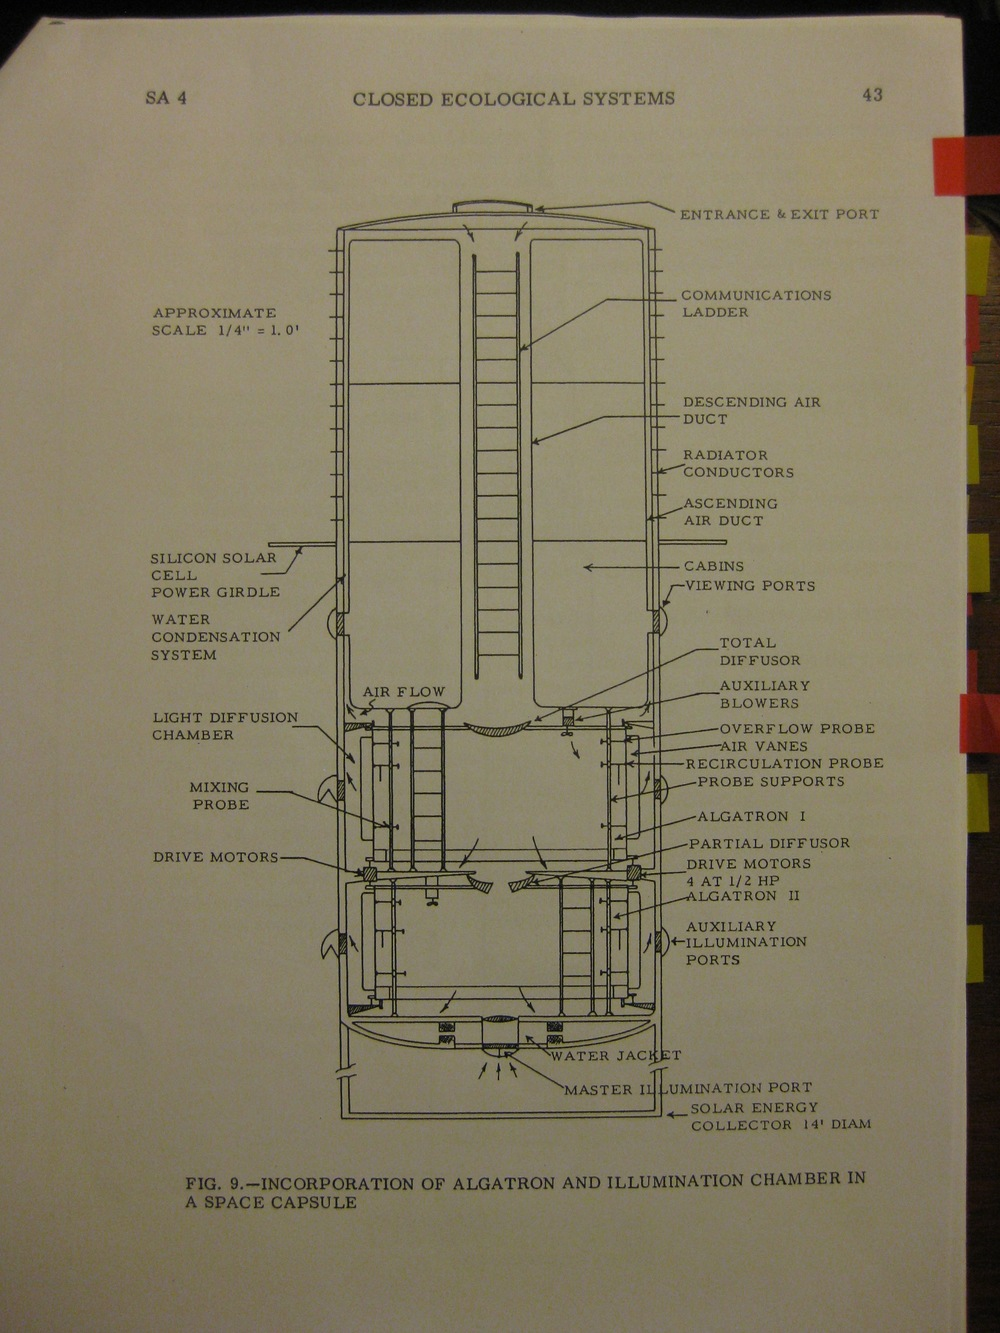 PLAN FOR THE ALGATRON MODULE FOR THE APOLLO MISSIONS CIRCA 1965.